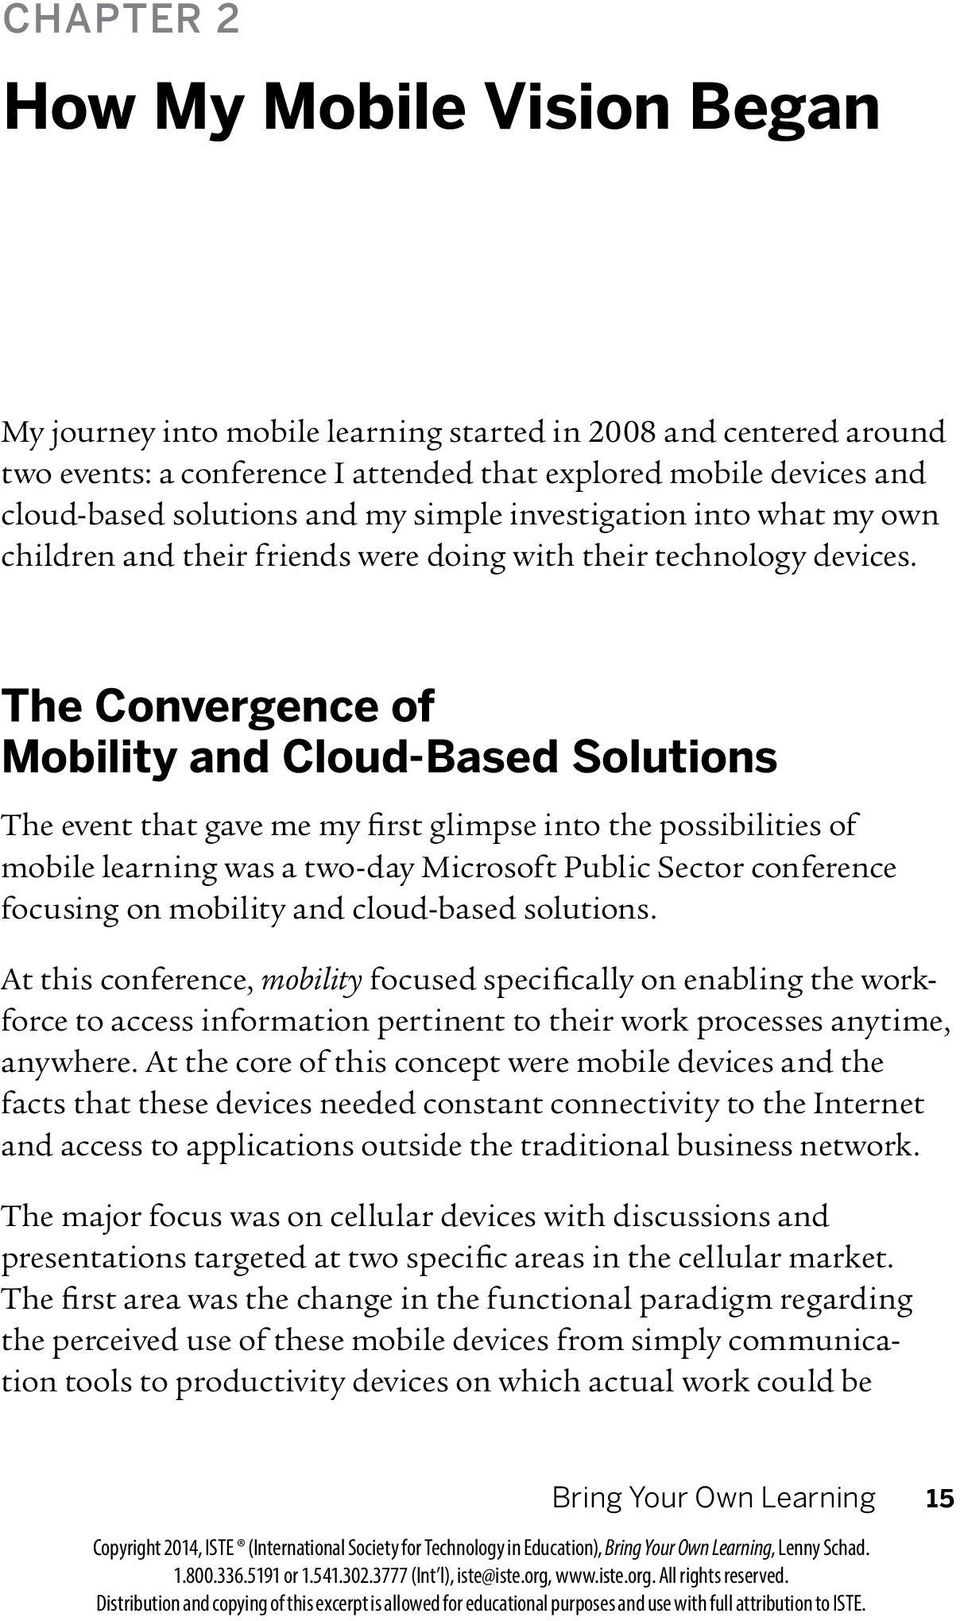 The Convergence of Mobility and Cloud-Based Solutions The event that gave me my first glimpse into the possibilities of mobile learning was a two-day Microsoft Public Sector conference focusing on